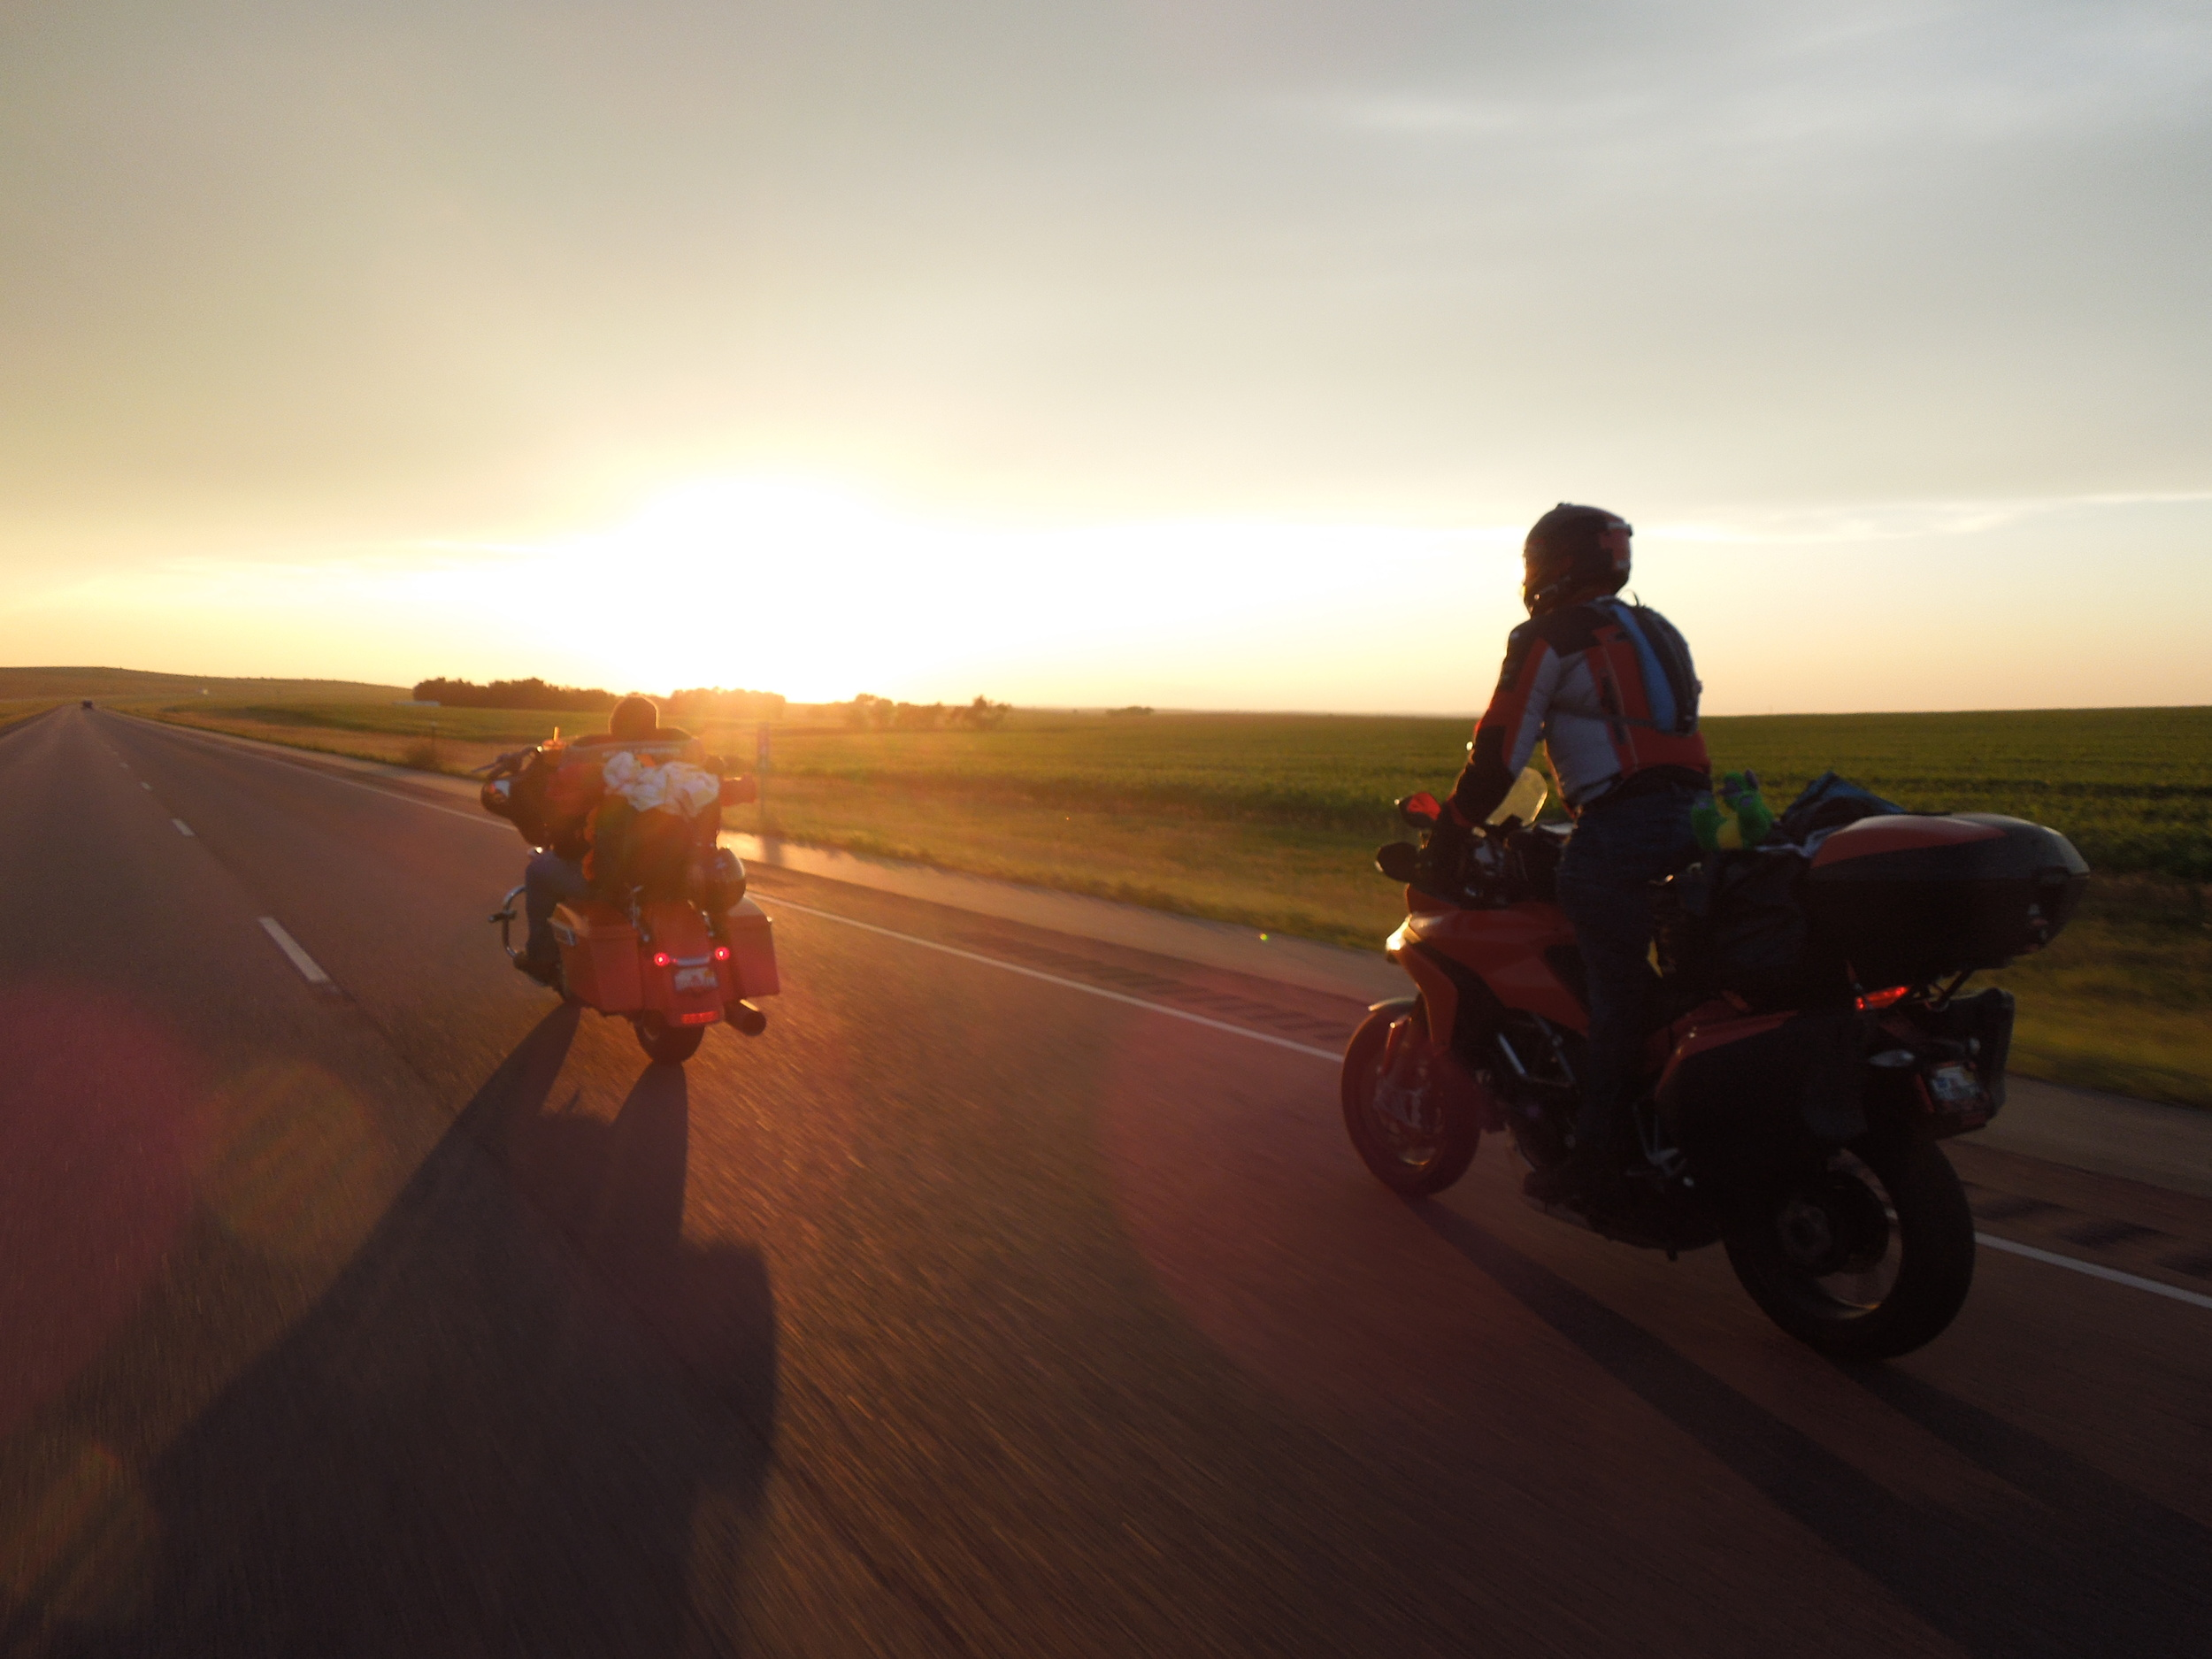 Heading into the sunset, west-bound on I-90 in South Dakota, to Sturgis for the Black Hills Bike Rally.